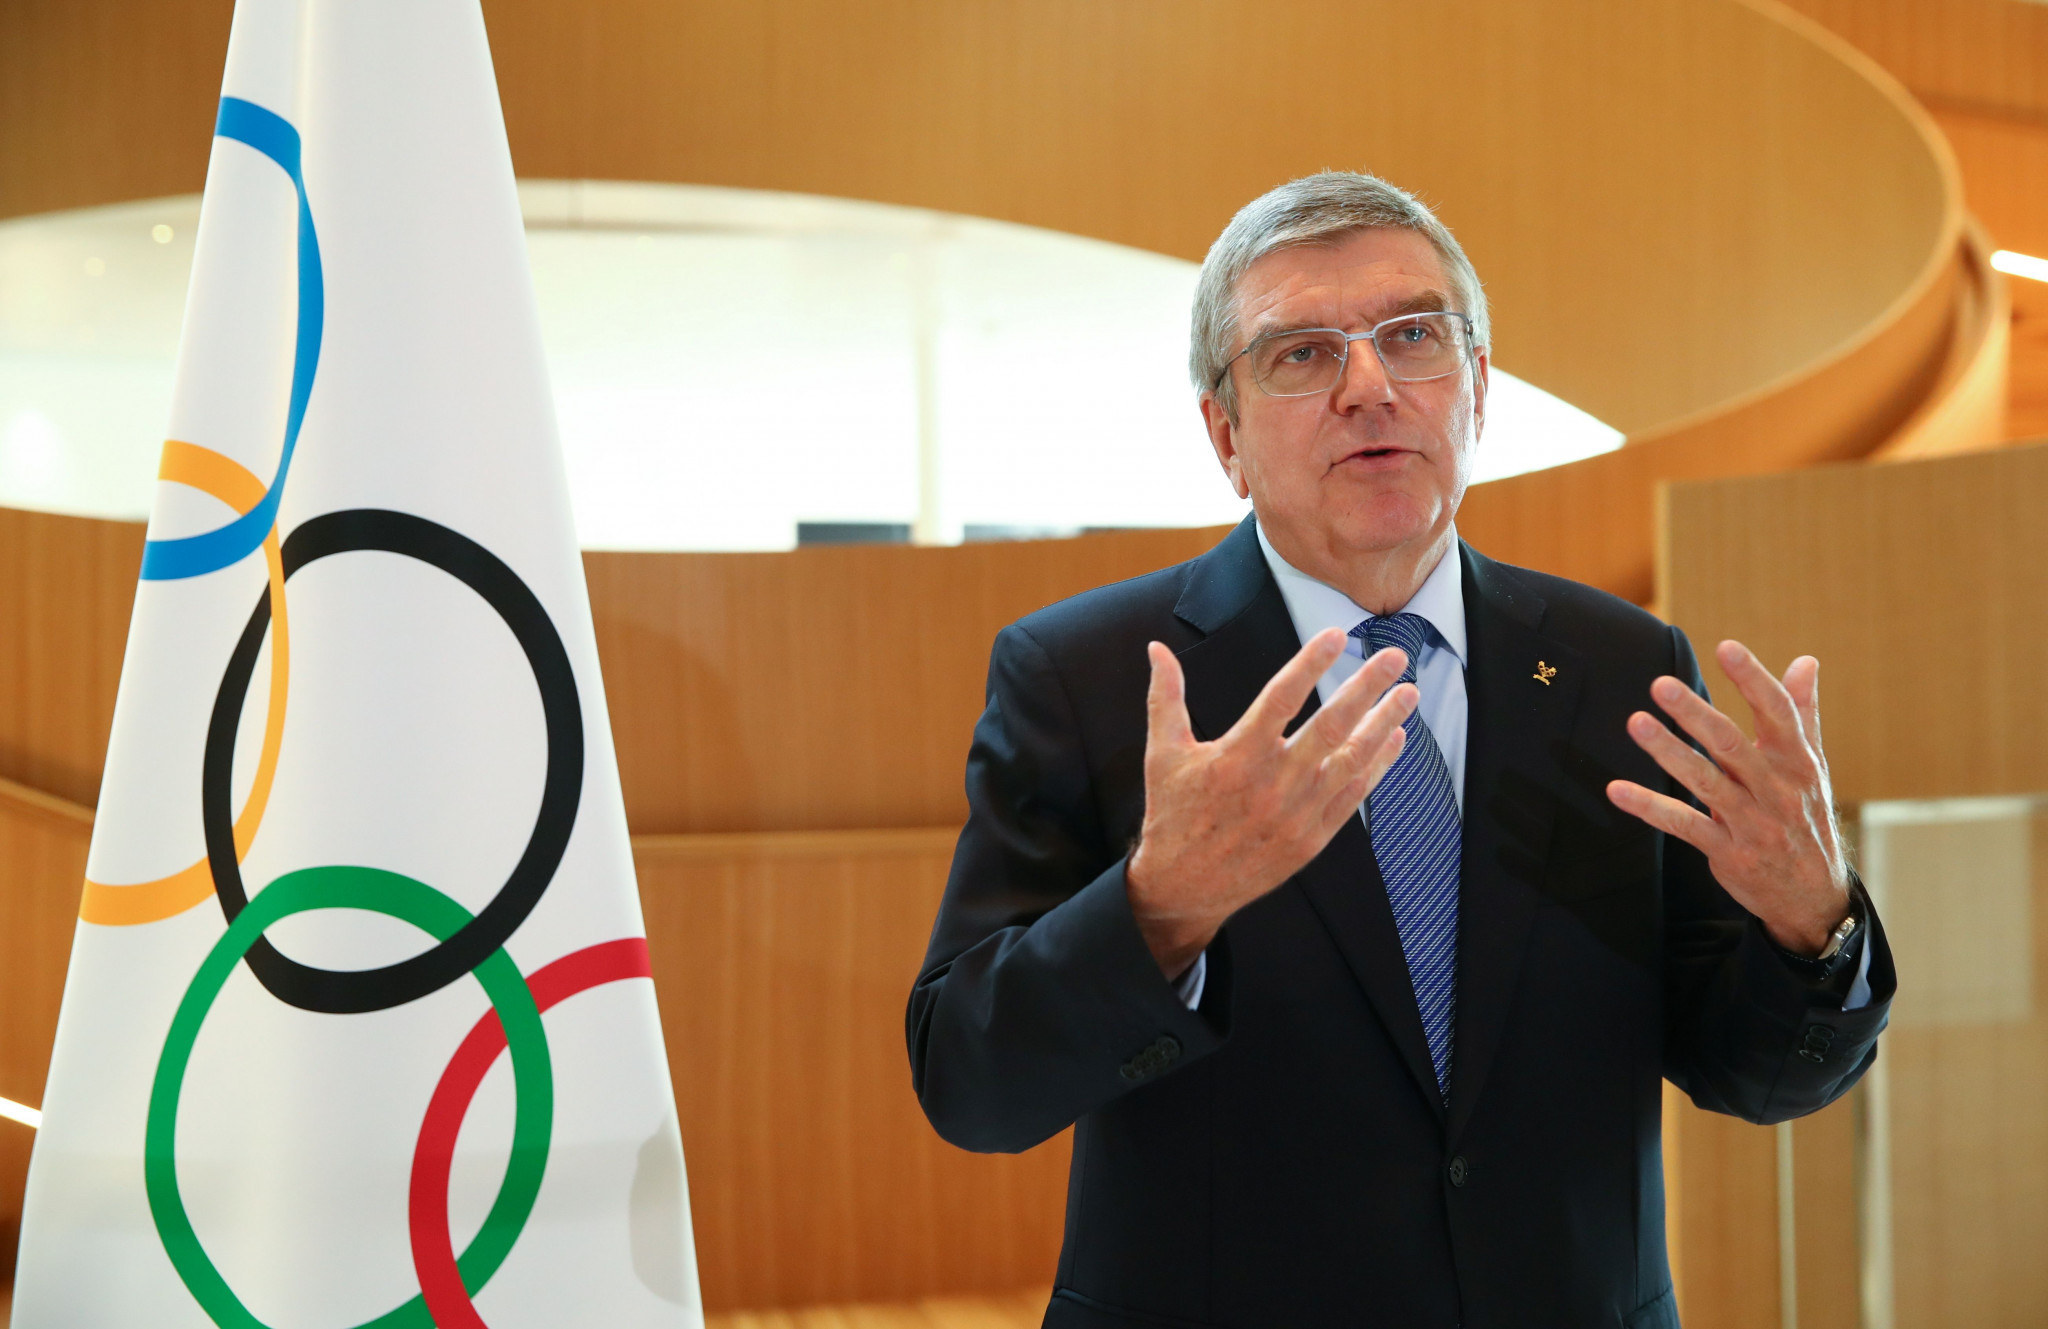 IOC President Thomas Bach described the Olympic Games as the most complex event in the world ©Getty Images